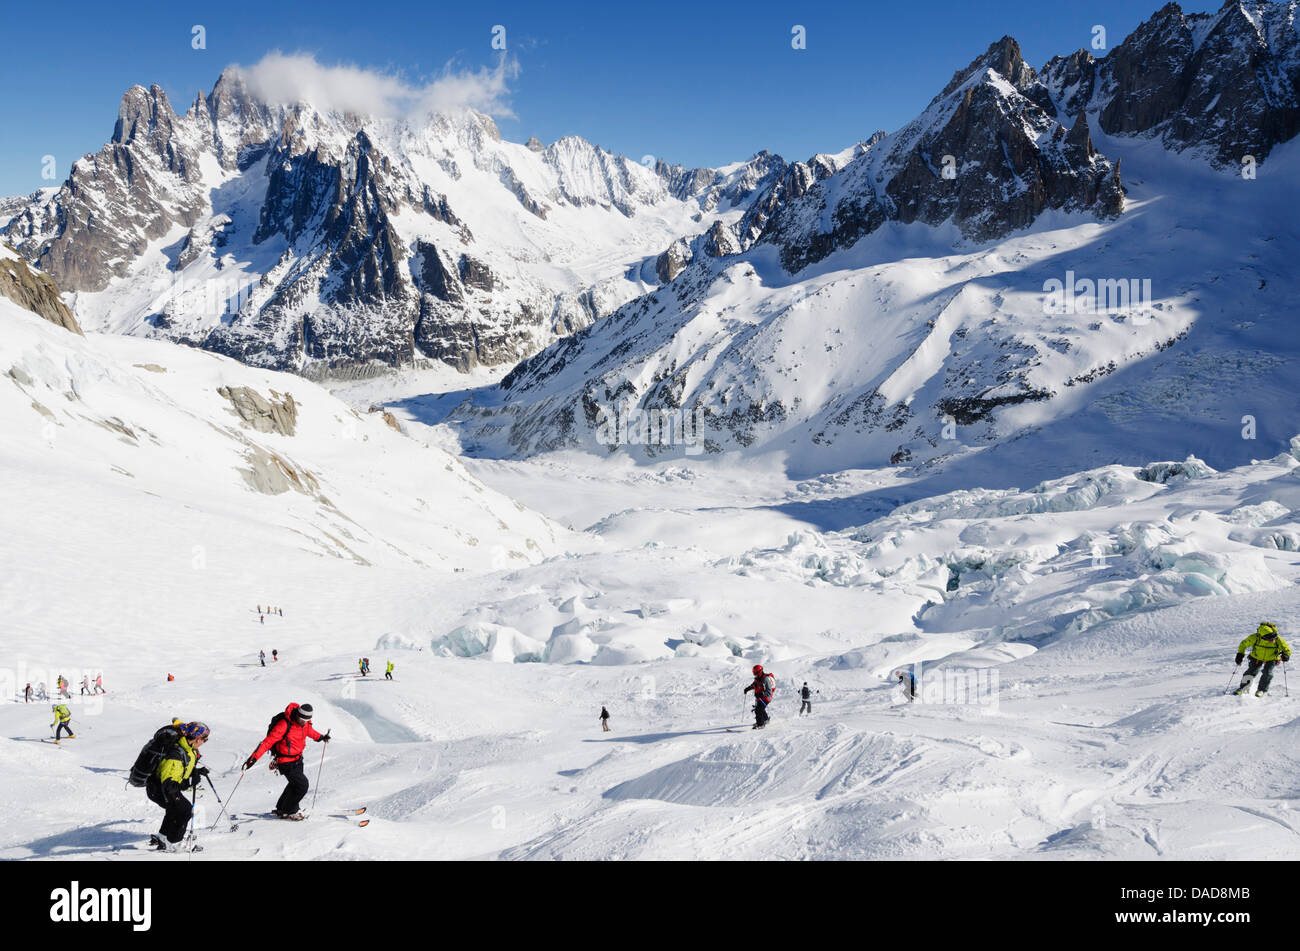 Vallee Blanche off piste ski area, Chamonix, Haute-Savoie, French Alps, France, Europe - Stock Image